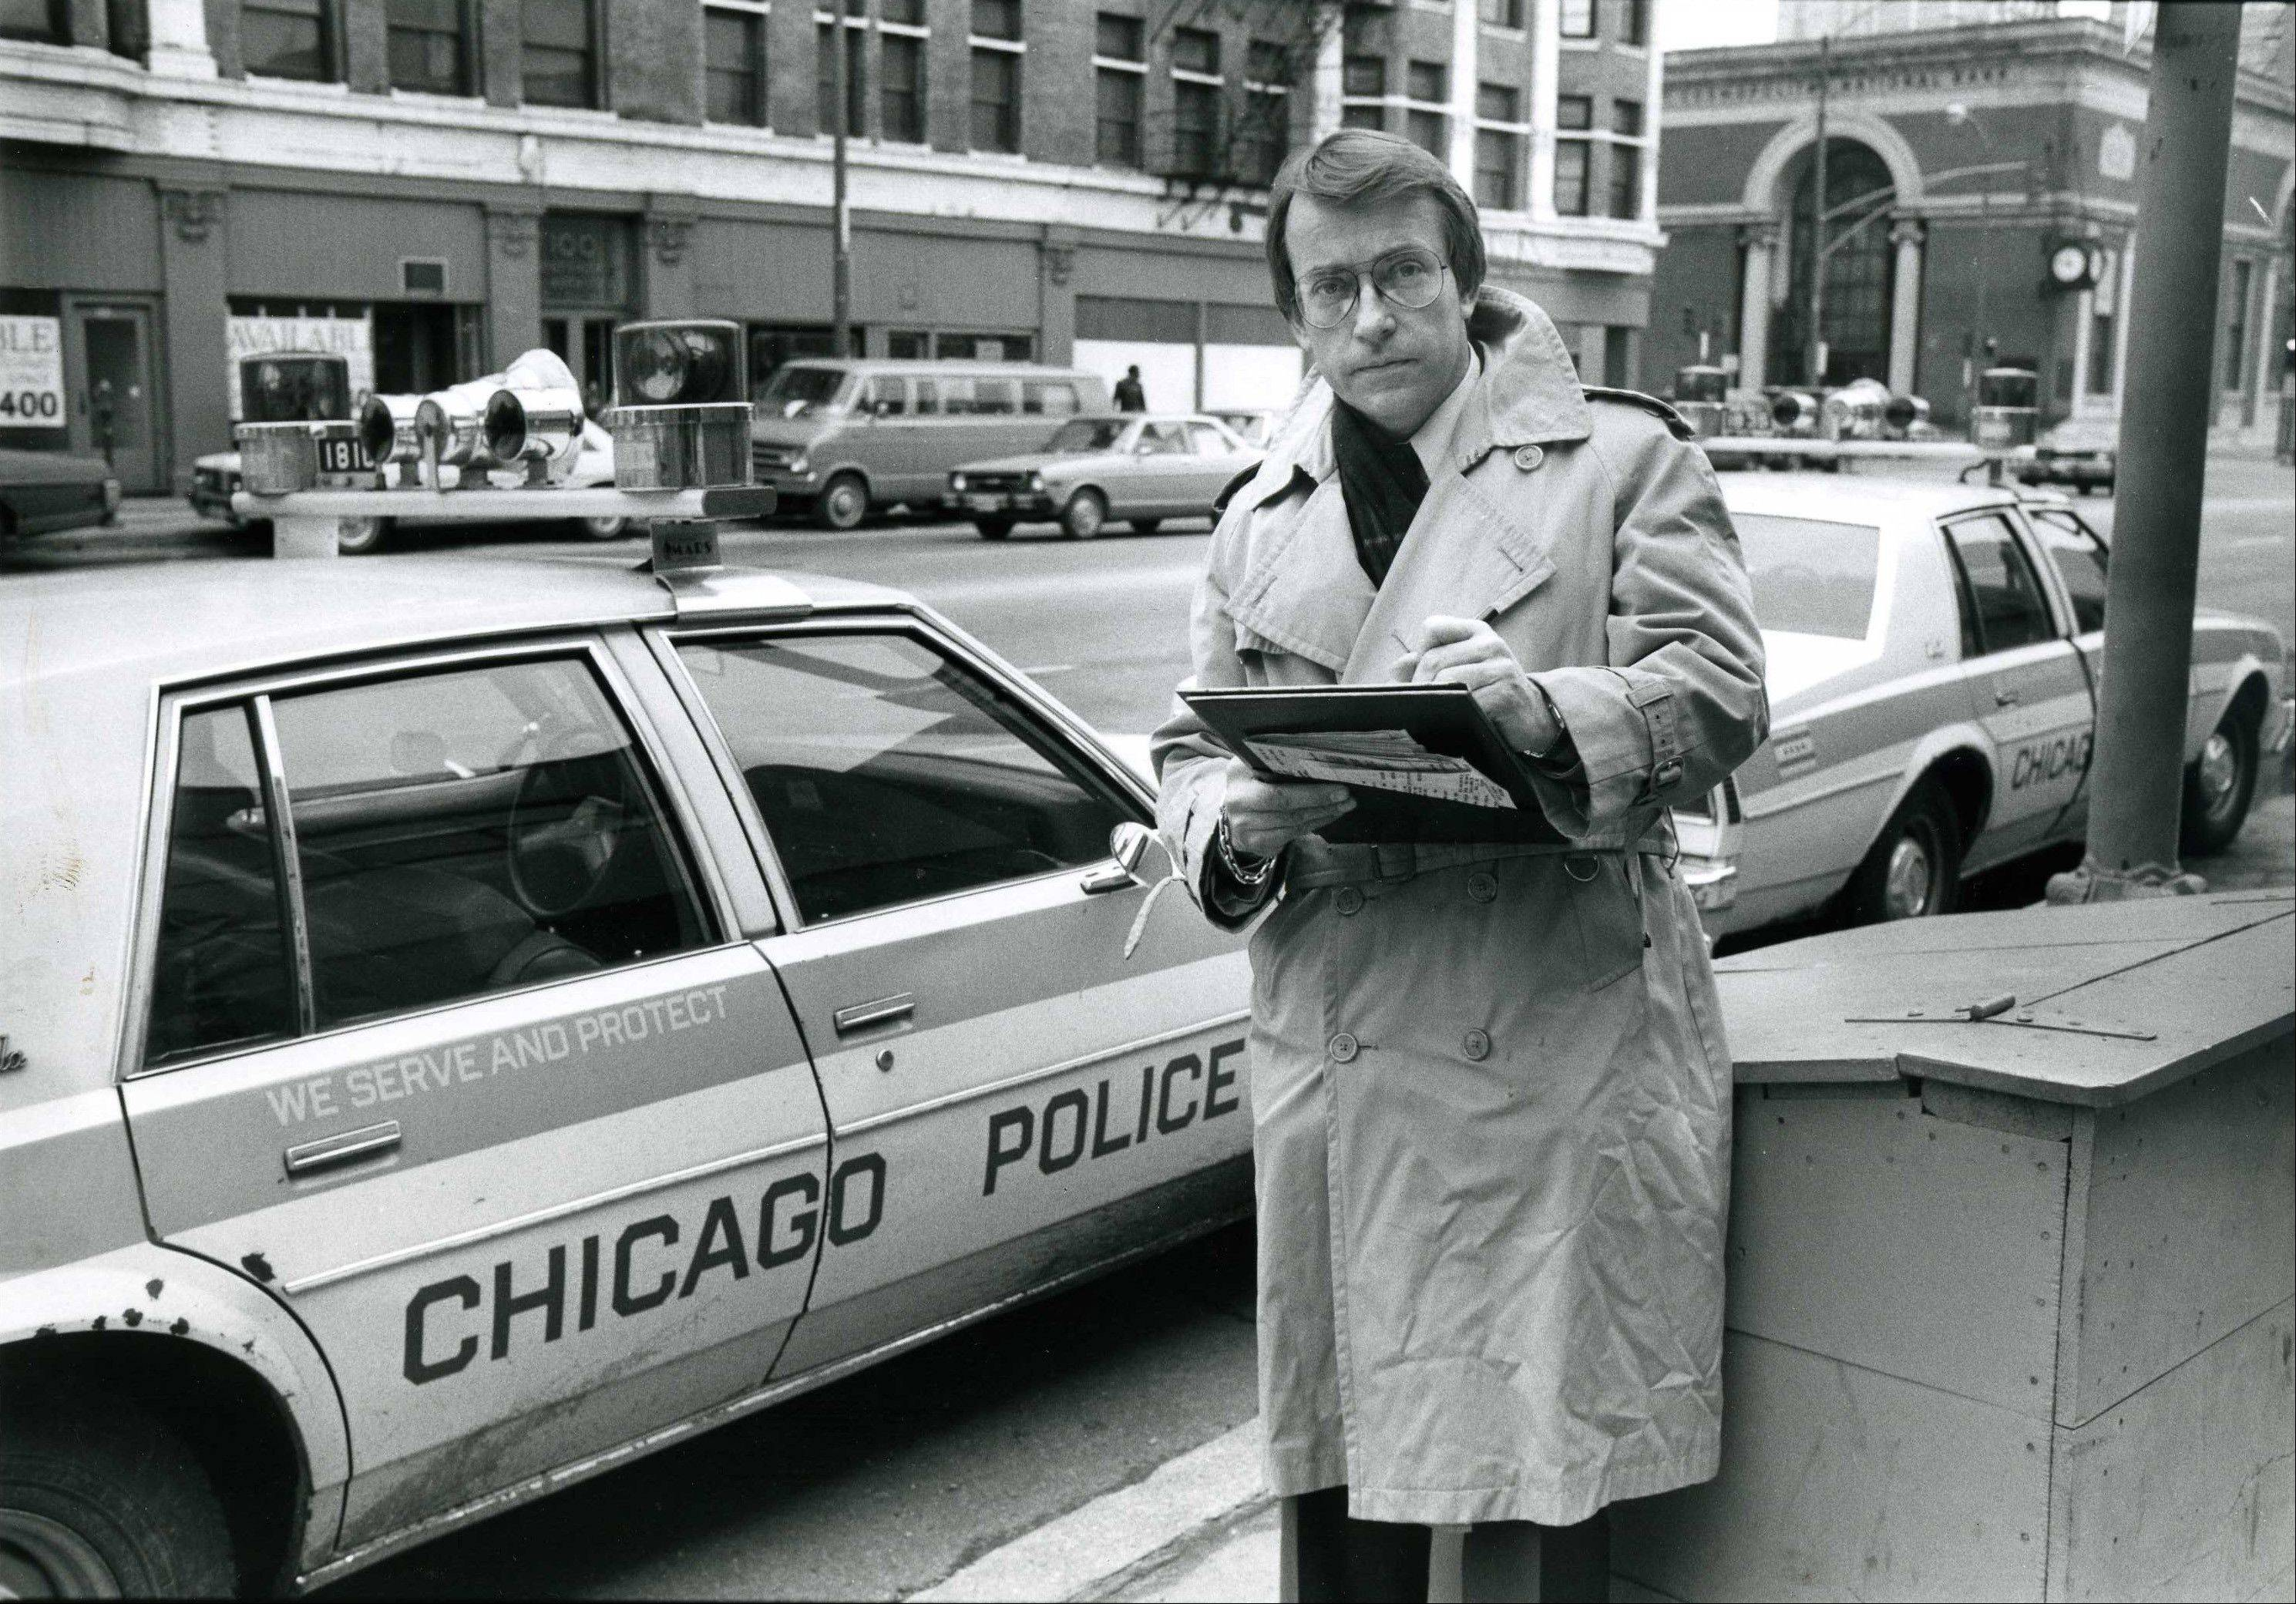 In this Feb. 2, 1983 image released by ABC, ABC News correspondent Richard Threlkeld is shown in Chicago. Threlkeld, who worked for ABC News from 1982-89 and spent the majority of his career at CBS News, died Friday, Jan. 13, 2012, in Amagansett, N.Y., and was pronounced dead at Southampton Hospital. He lived nearby in East Hampton.†